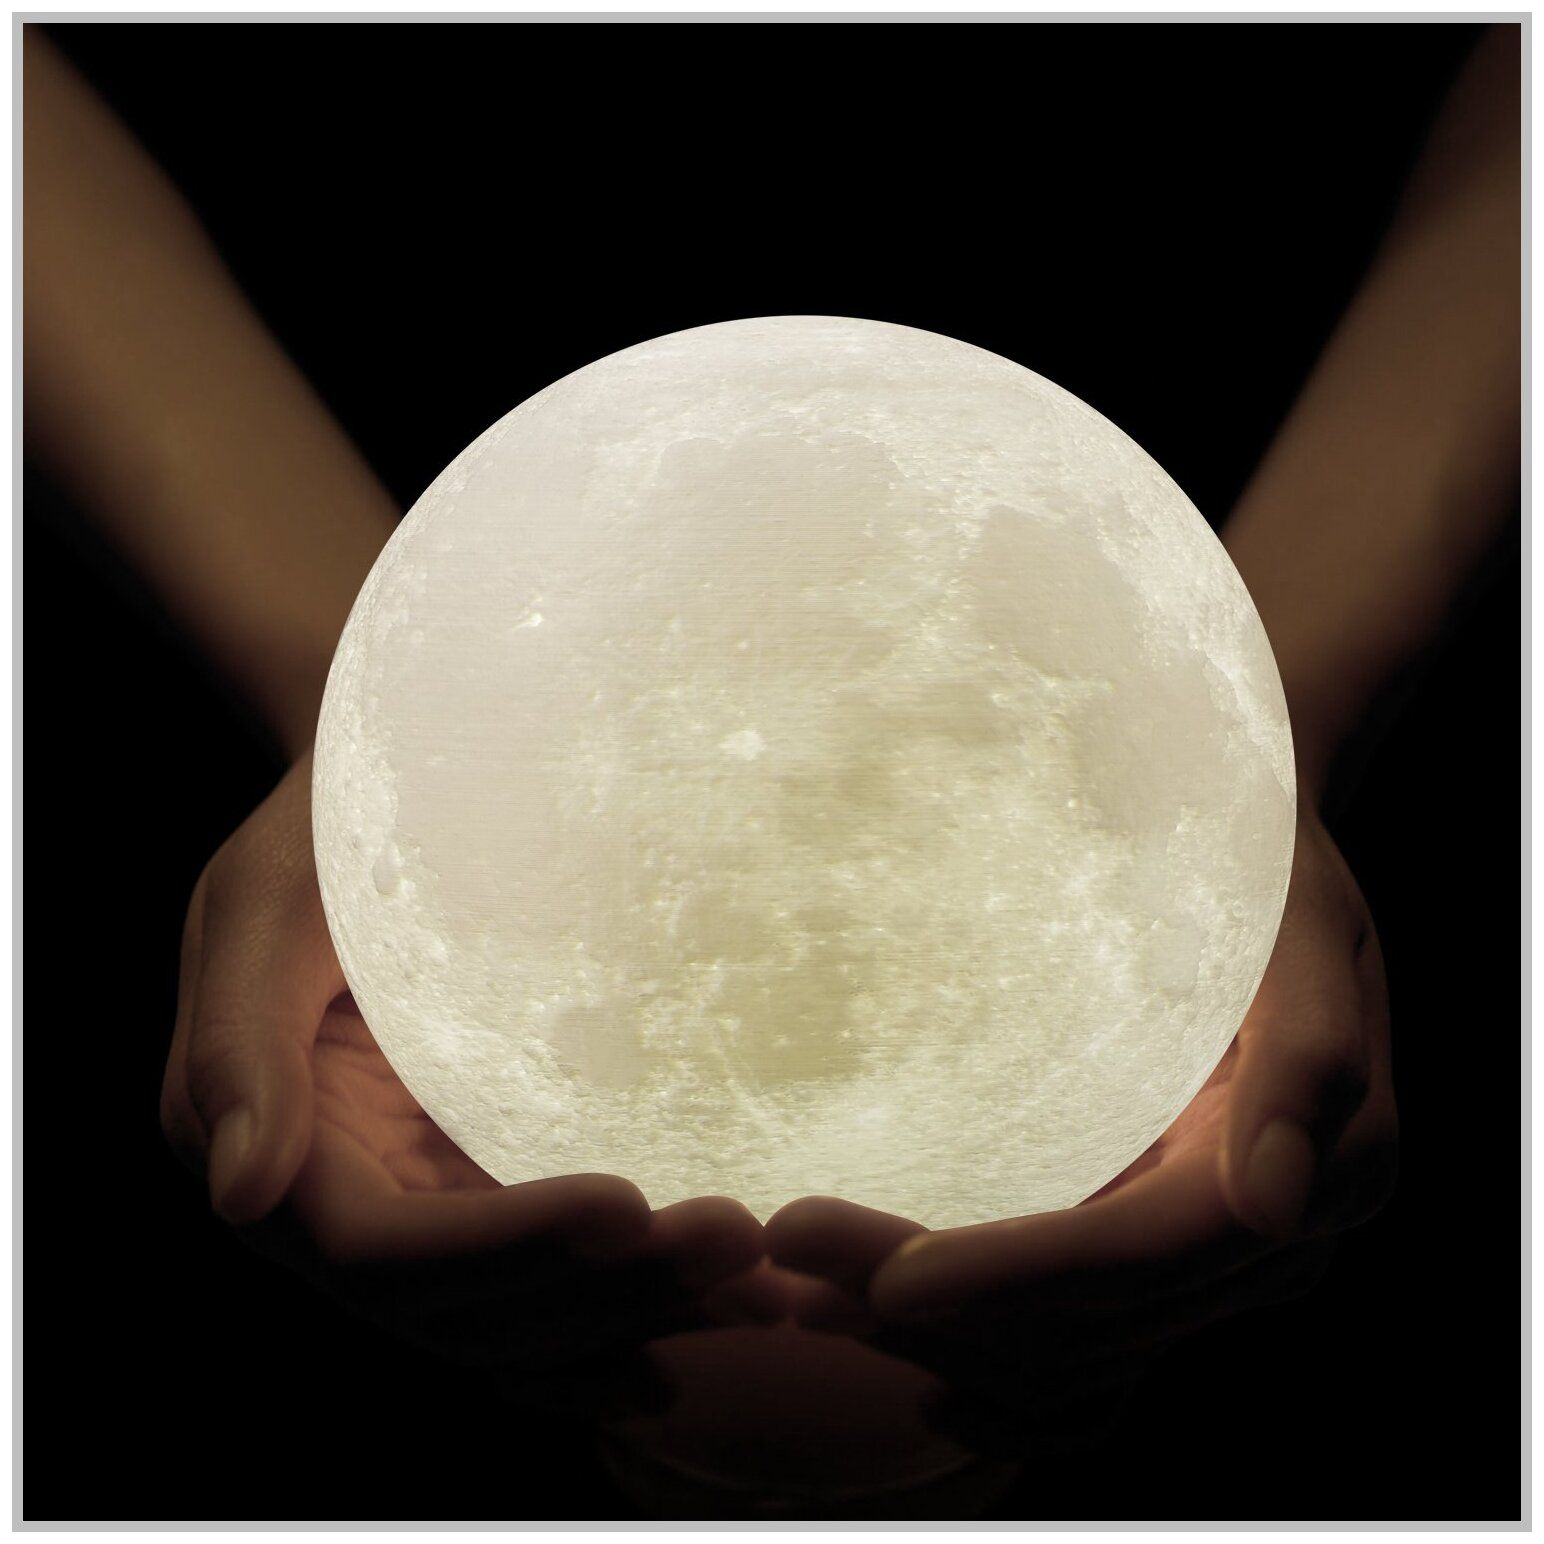 46 Reference Of Night Light Moon Lamp In 2020 Baby Night Light Night Light Lamp Night Light